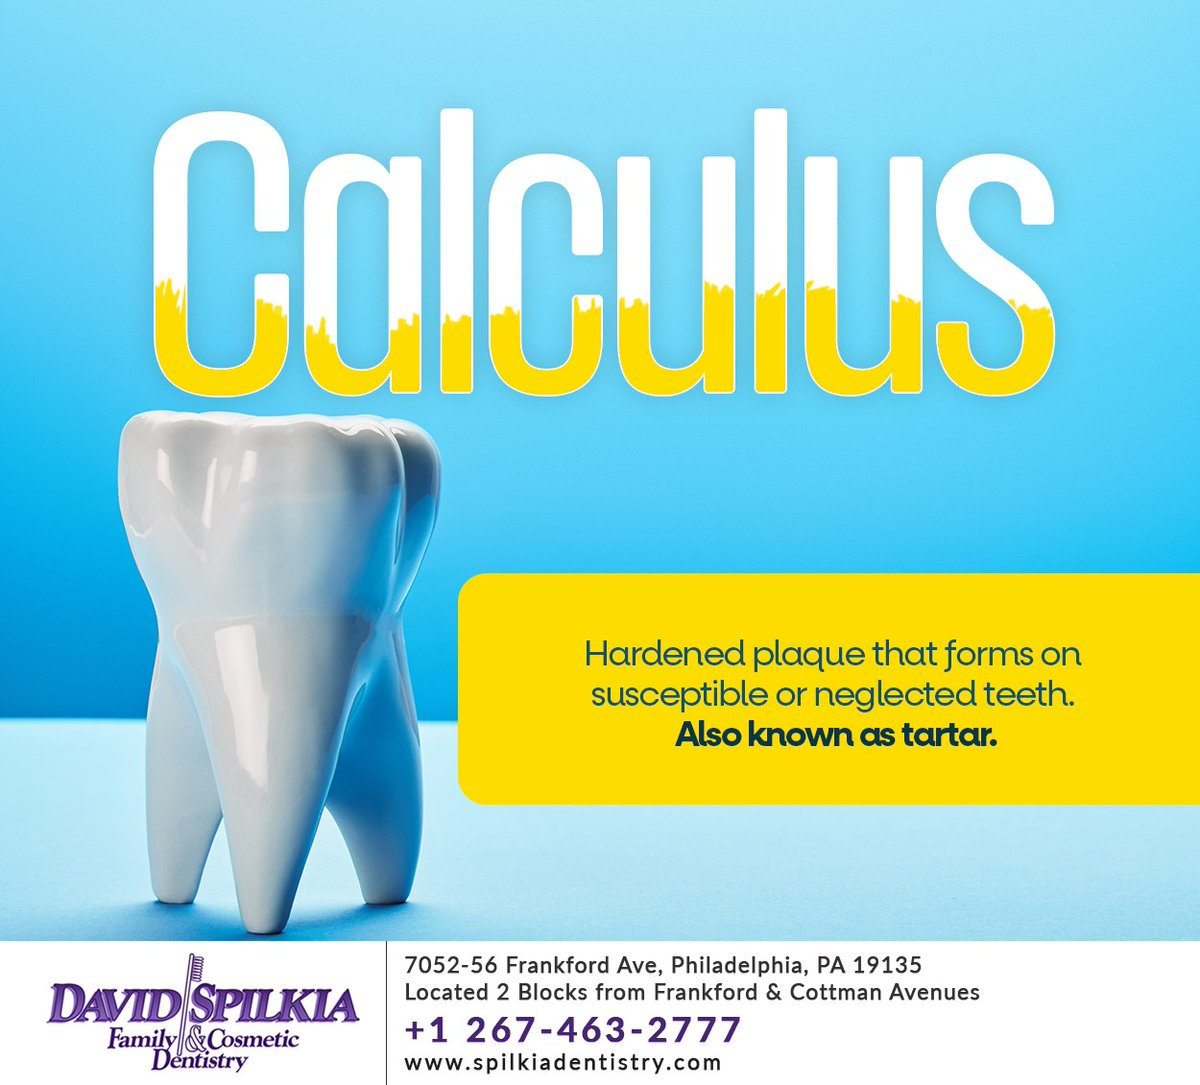 #Calculus is the hardened plaque that the dentist or hygienist scrapes off your teeth during a dental cleaning. It can lead to cavities if not removed. Schedule a cleaning today at  #dentalcleaning #philadelphia #PA #spilkiadentistry